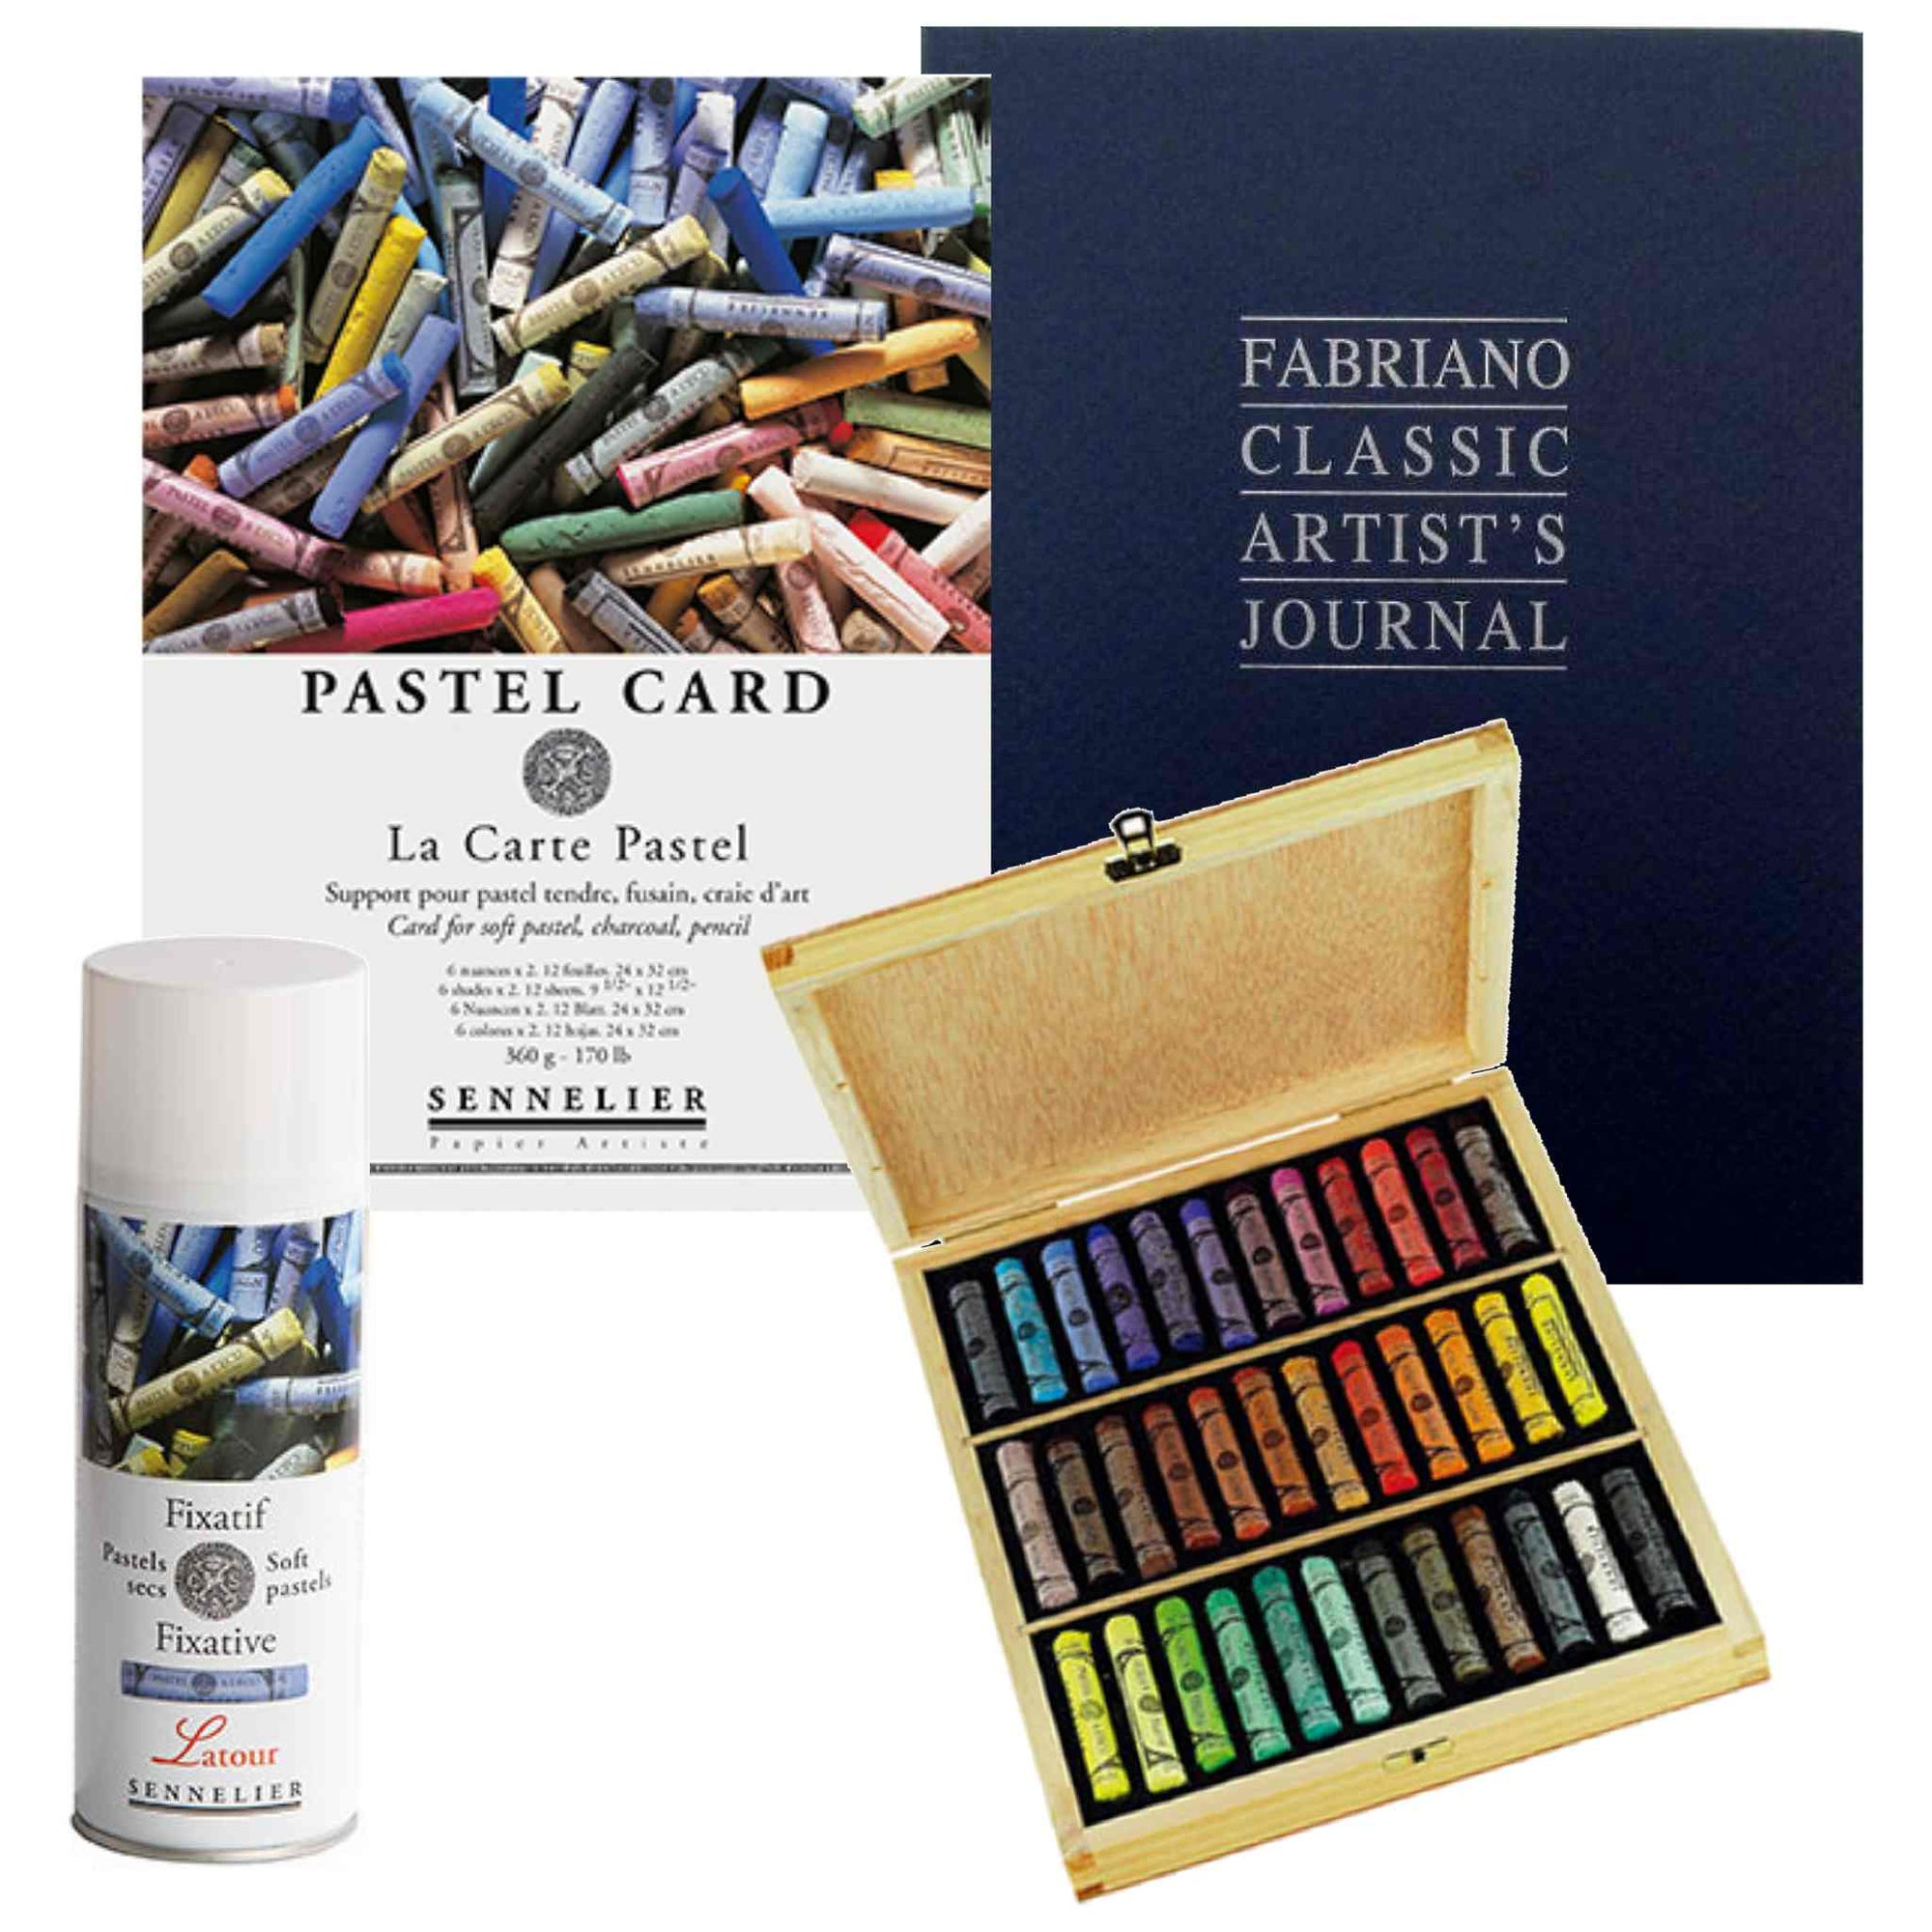 Art Bundle Set 1 x Sennelier boxed set of 36 extra soft pastels 1x Fabriano Classic Journal 16 x 21cm with 192 Sheets 1x Sennelier Pastel Card – Pads 16 x 24cm 1x Sennelier Soft Pastel Fixative - Latour - 400ml Aerosol Can